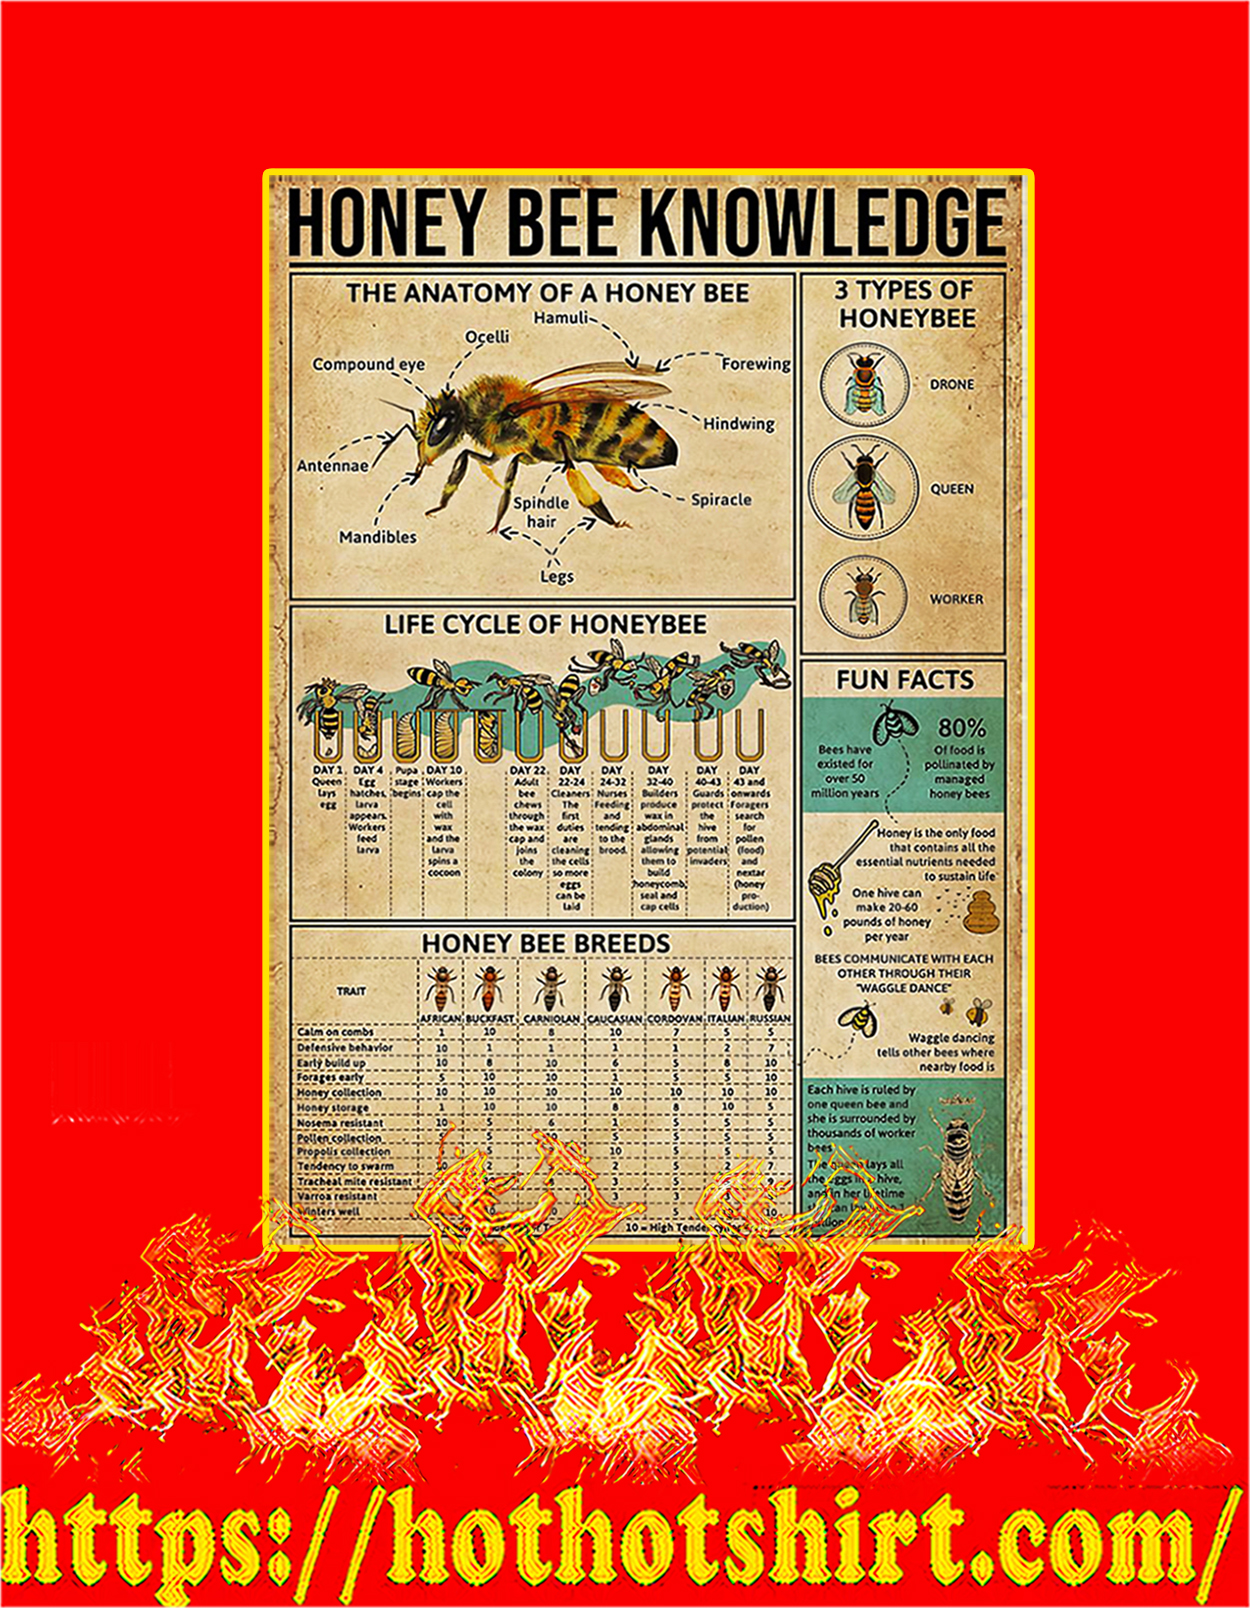 Honey bee knowledge poster - A3